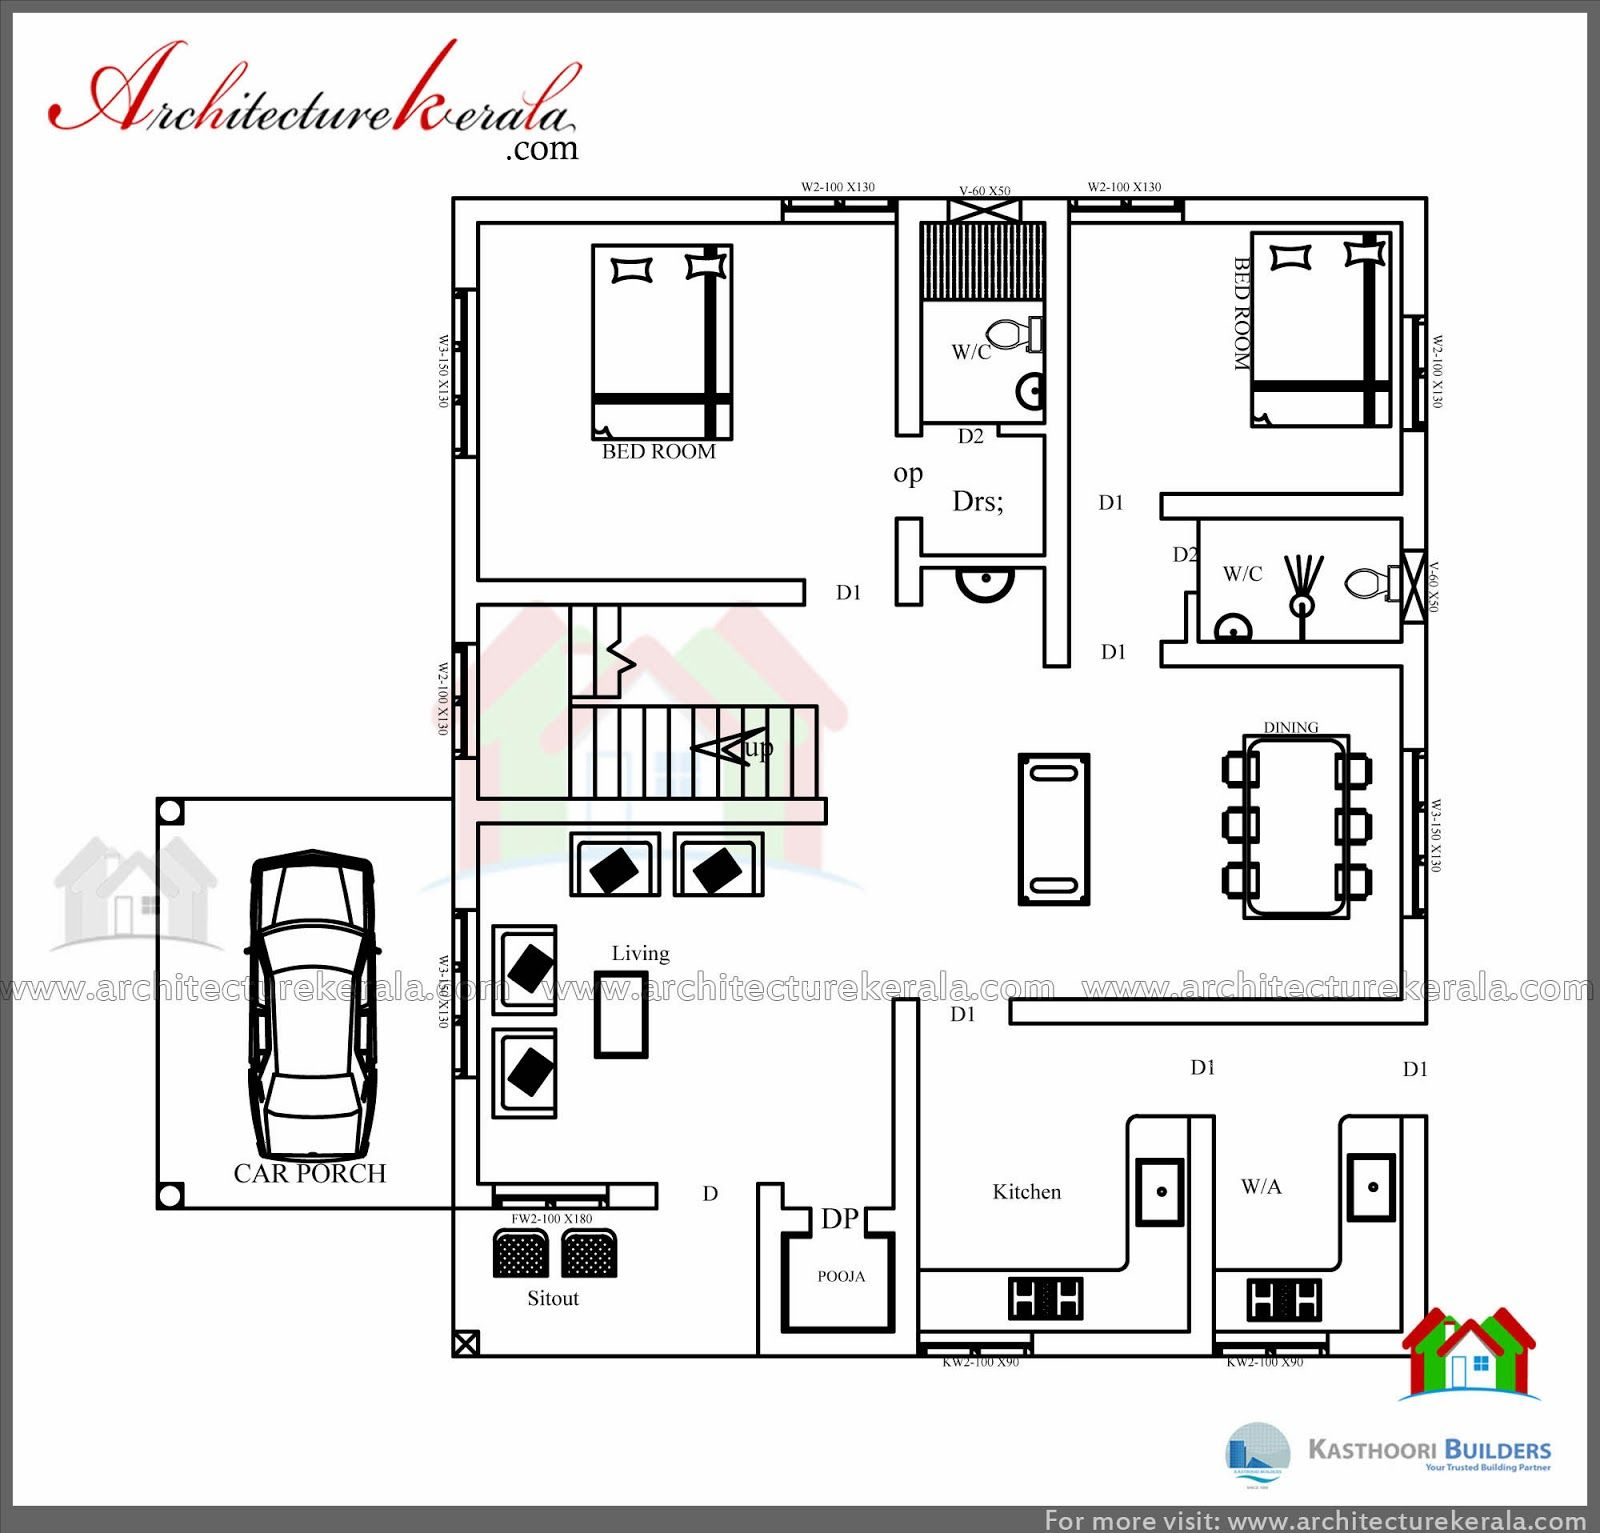 3 Bedroom House Plan And Elevation In Square Feet